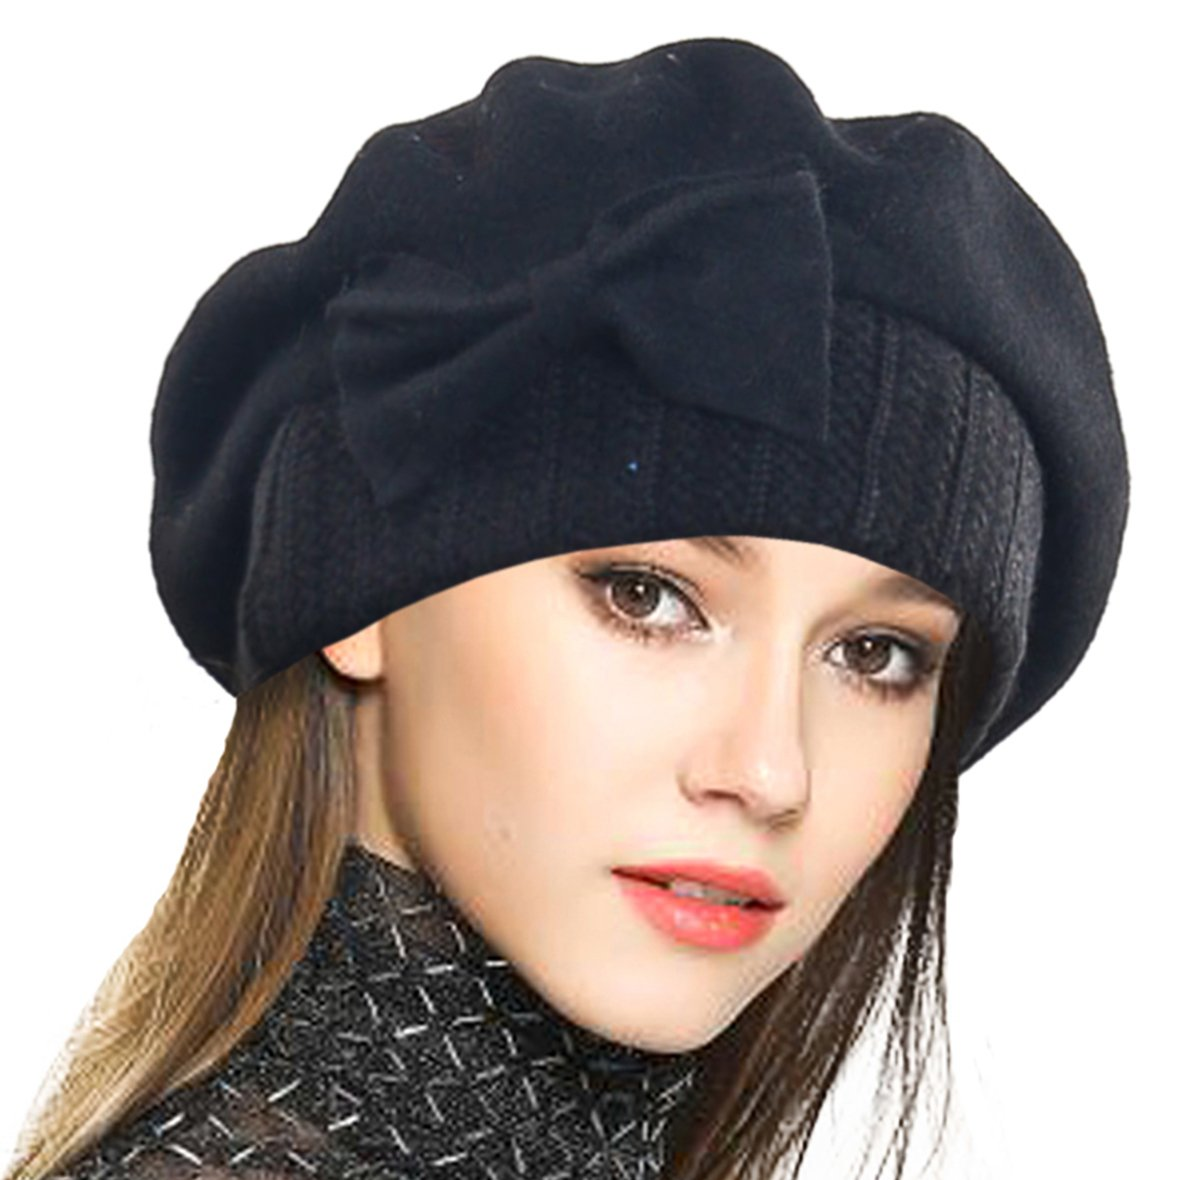 VECRY Lady French Beret 100% Wool Beret Floral Dress Beanie Winter Hat (Bow-Black)